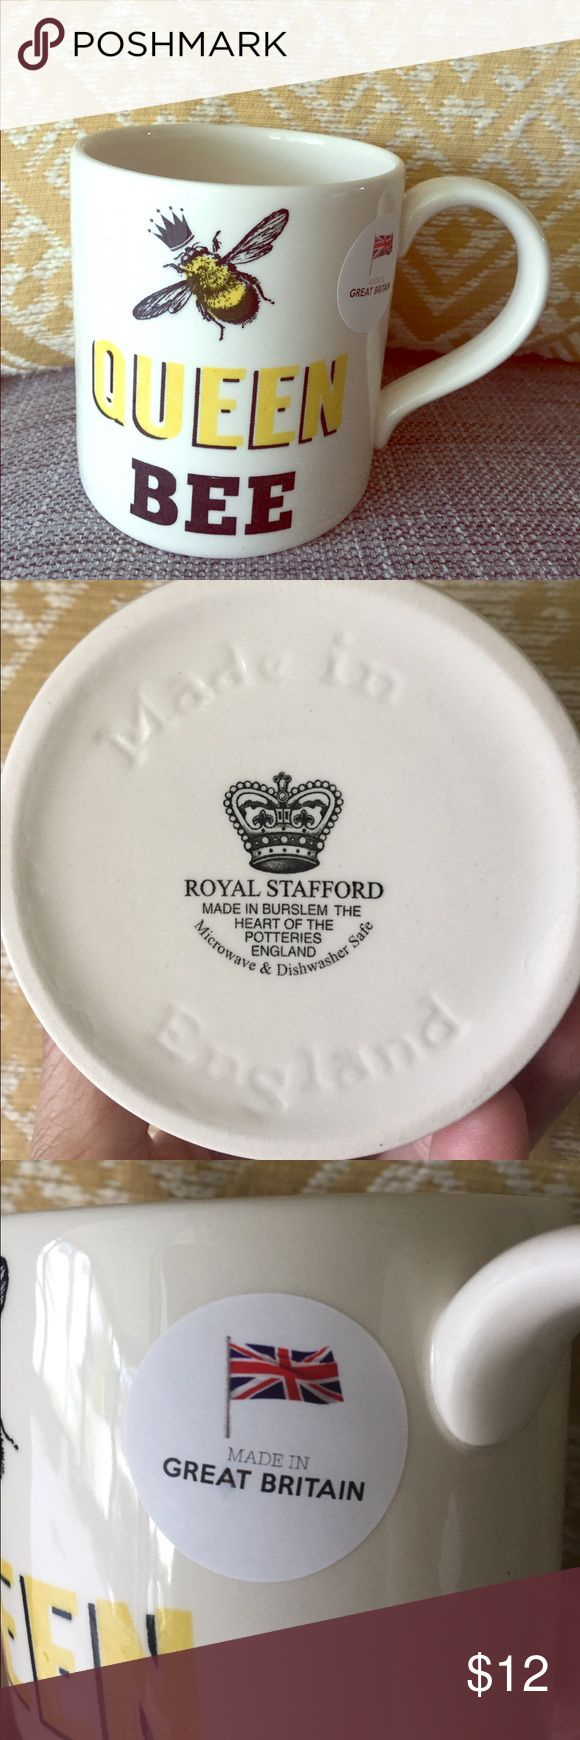 🐝👑Queen Bee🐝 Royal Stafford Mug Royal Stafford 🐝👑Queen Bee🐝🐝 mug // Made in Burslem the heart of the potteries England // Microwave & Dishwasher Safe // Brand New never used Royal Stafford Other